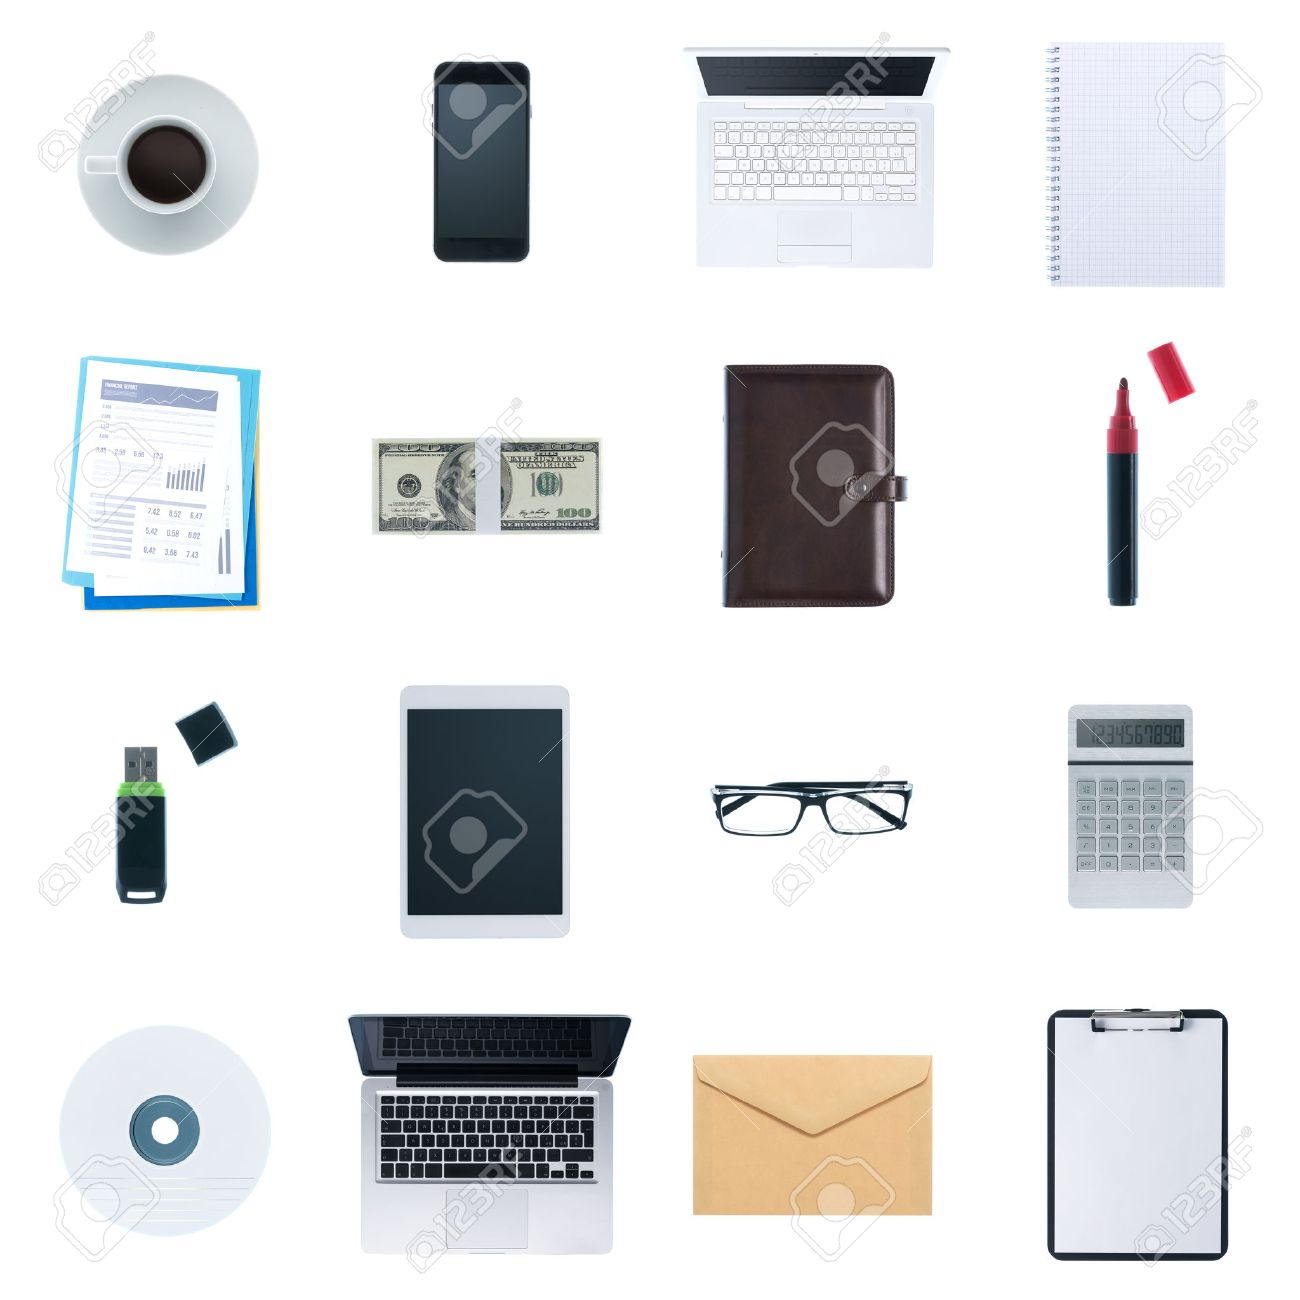 Business desktop objects isolated on white background: laptop, tablet, smartphone, calculator usb stick, paperwork and other items, top view Stock Photo - 41131012